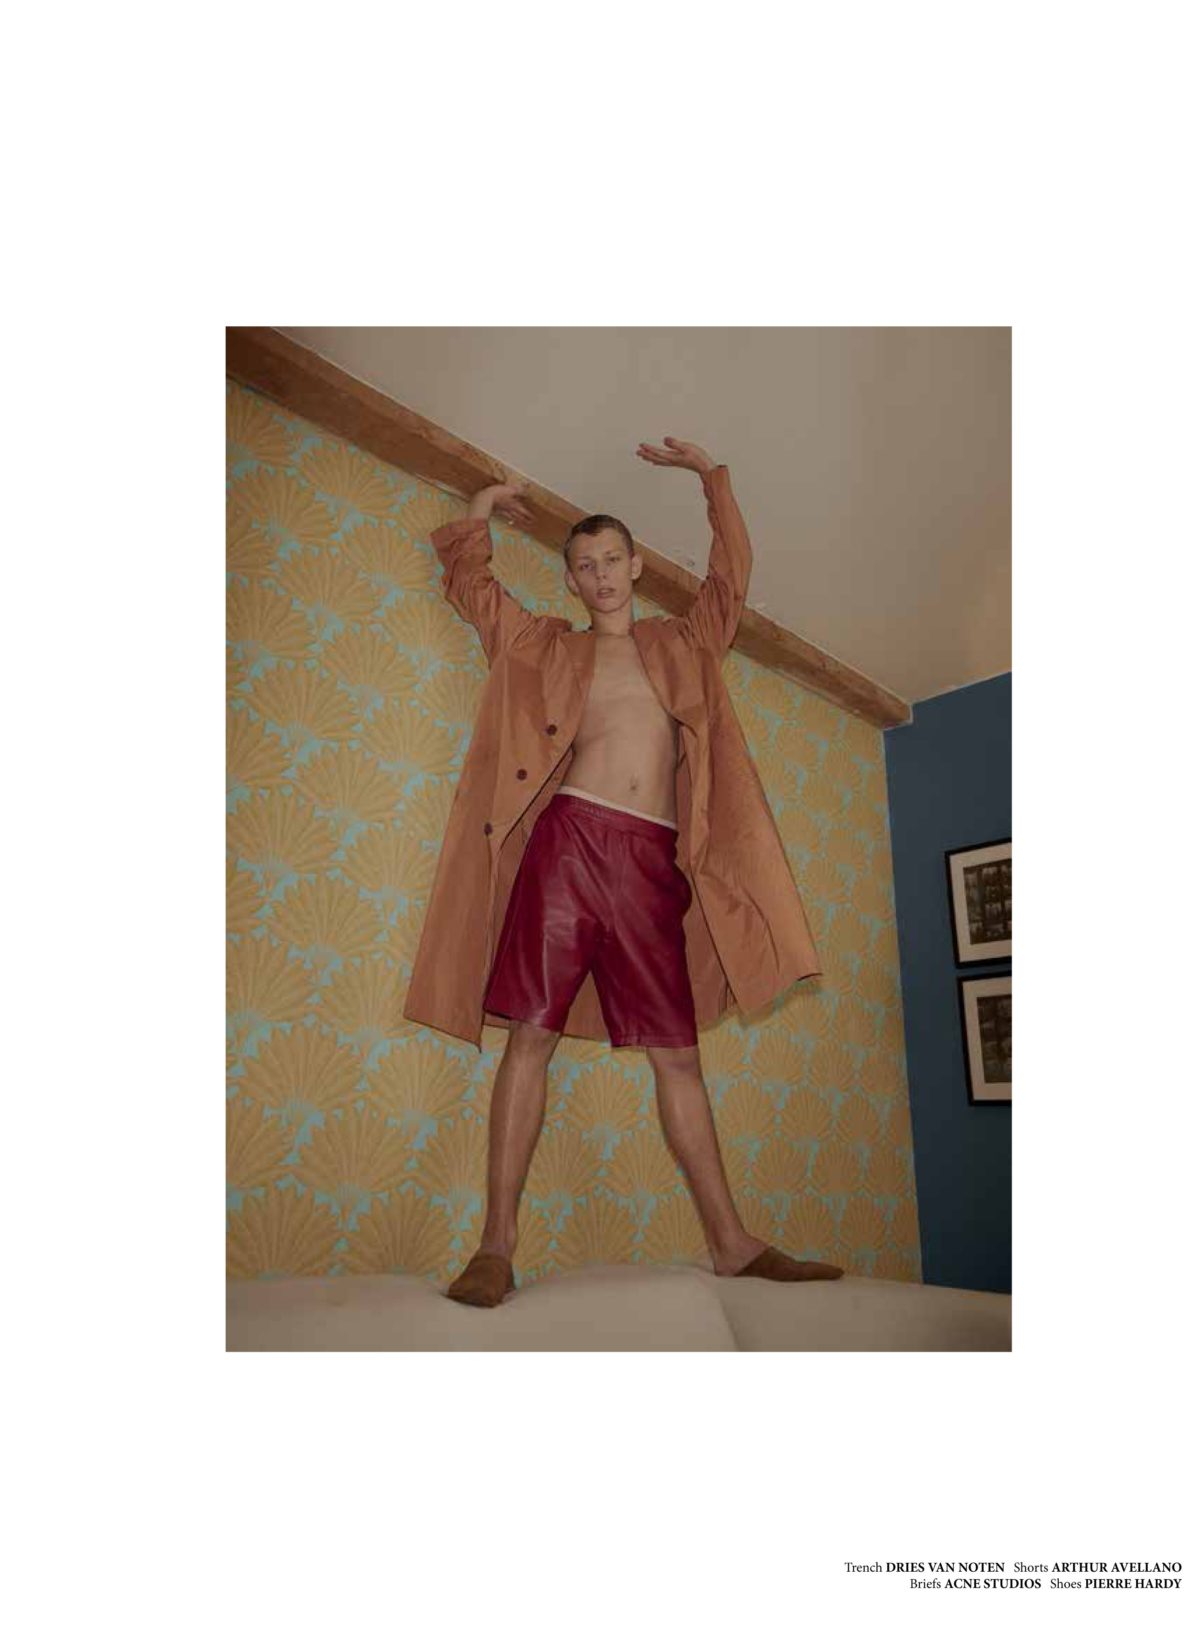 NR Magazine shot by Niklas Bergstrand & Mateja Duljak styled by Arthur Mayadoux with Dries van Noten, Arthur Avellano, Acne studios & Pierre Hardy